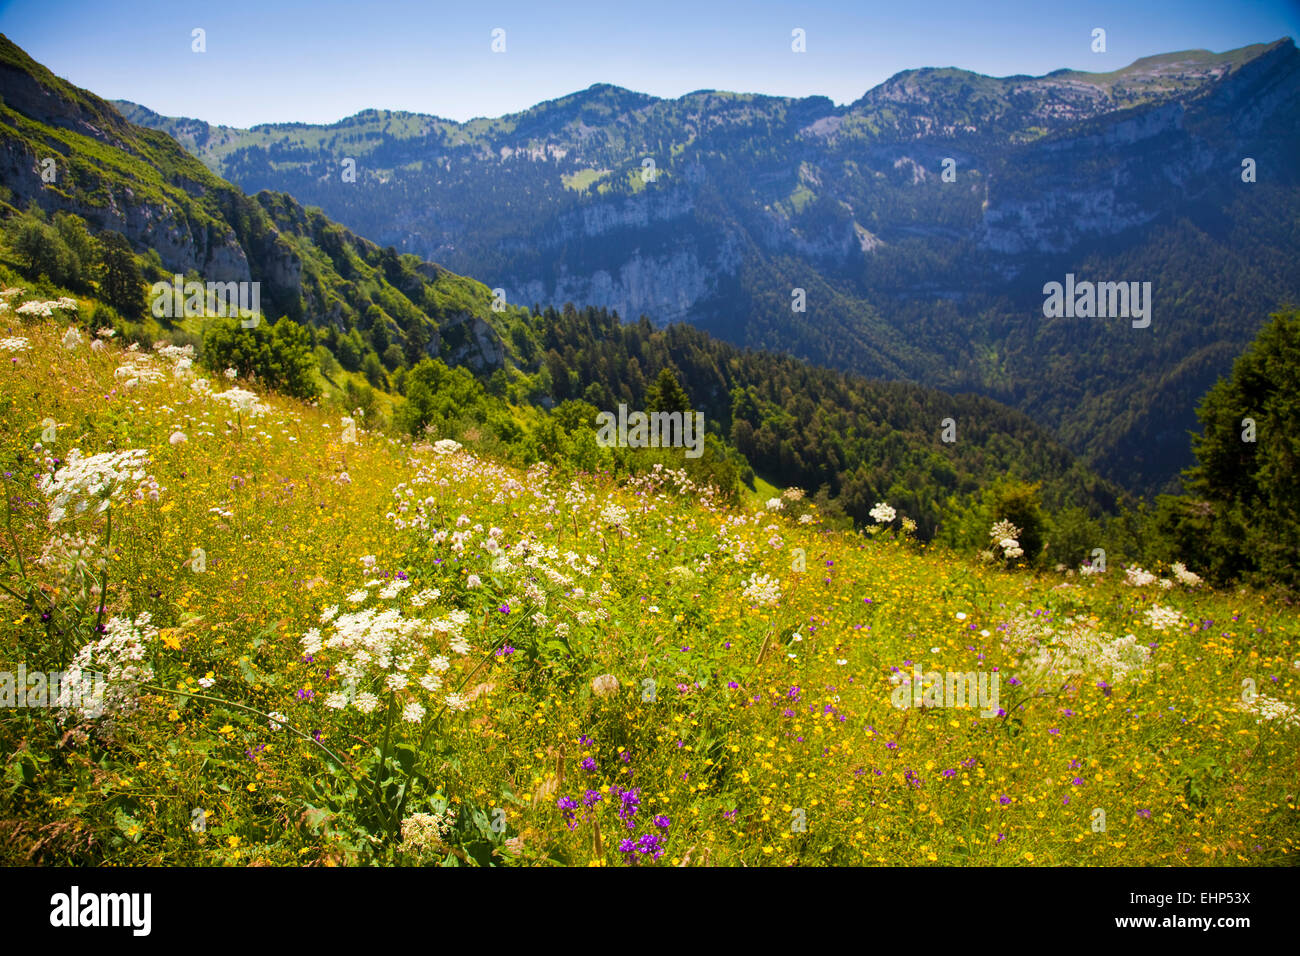 Wildflowers blooming in Chartreuse regional natural park, near Saint Pierre de Chartreuse, France - Stock Image